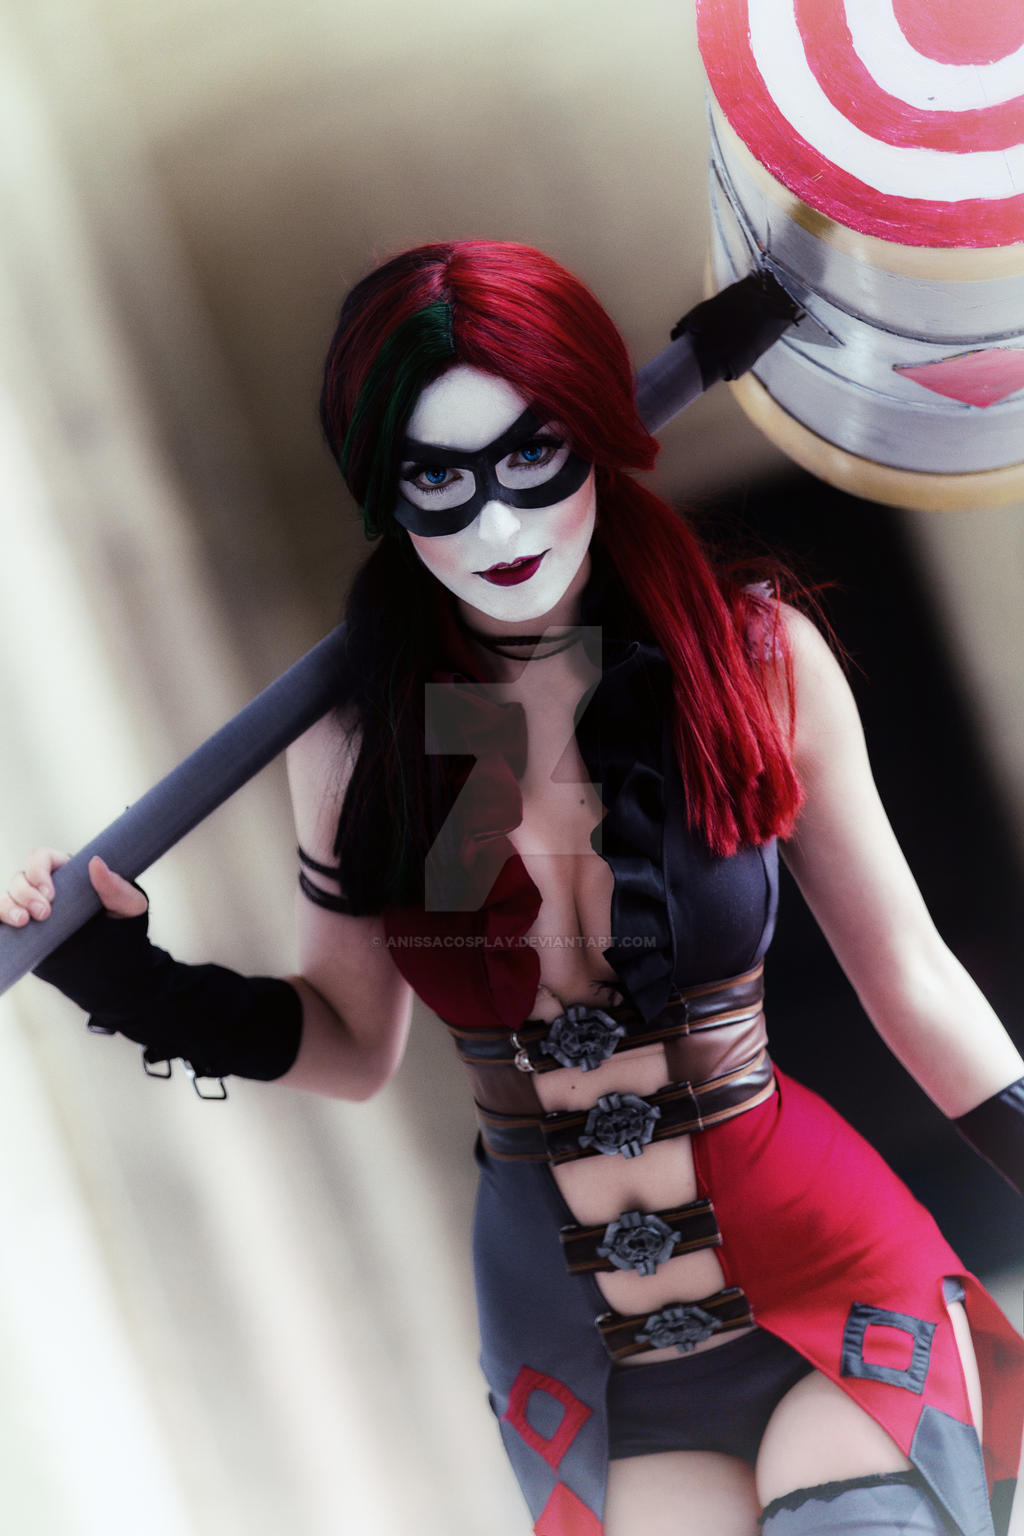 Harley Quinn Cosplay Injustice version by AnissaCosplay on